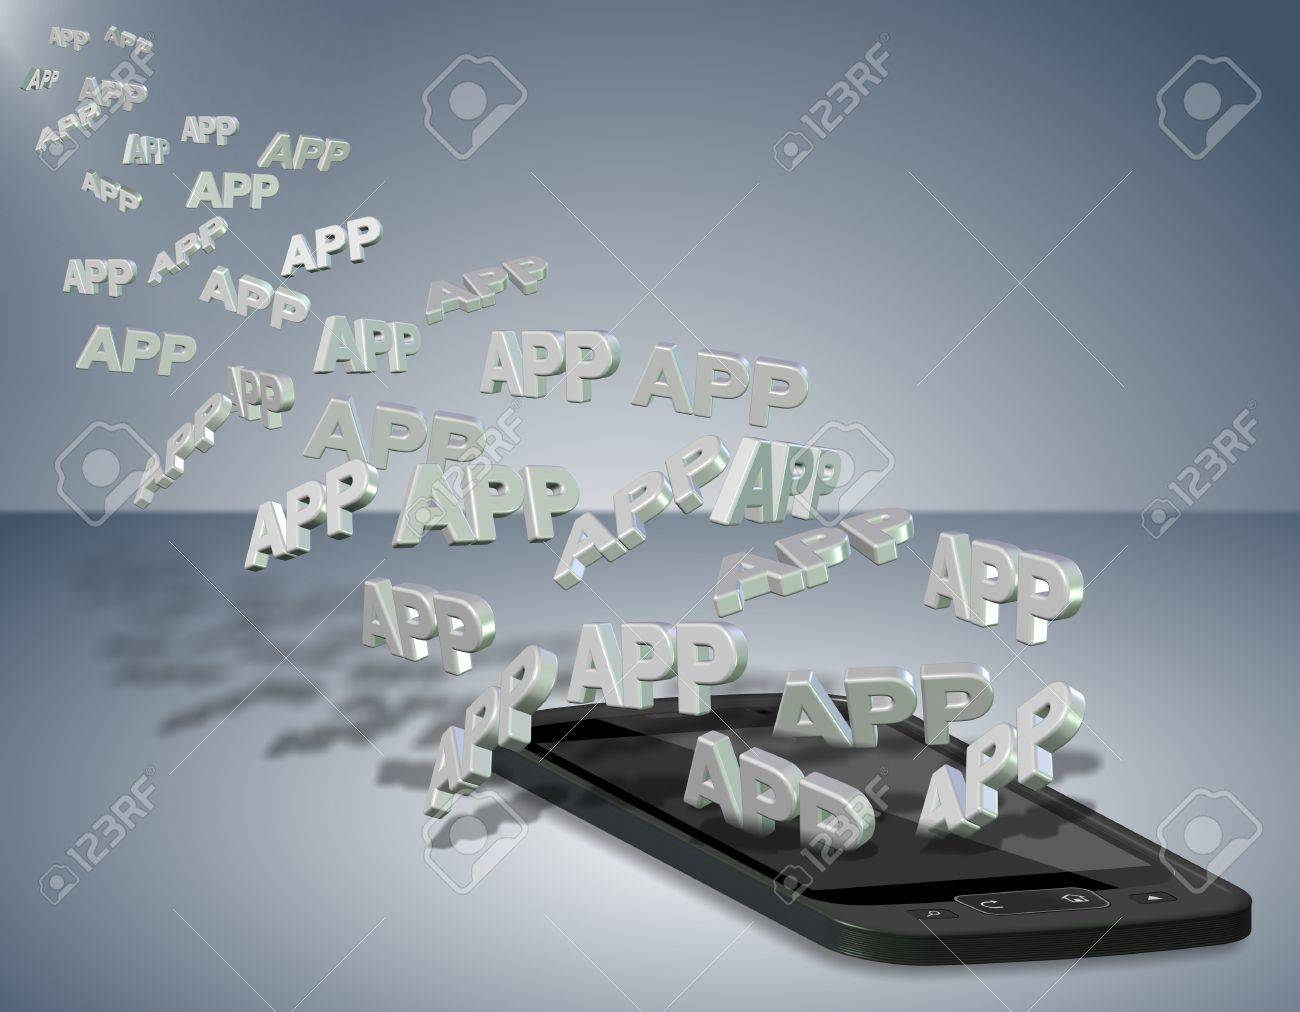 A number of words spelling app going into a mobile phone